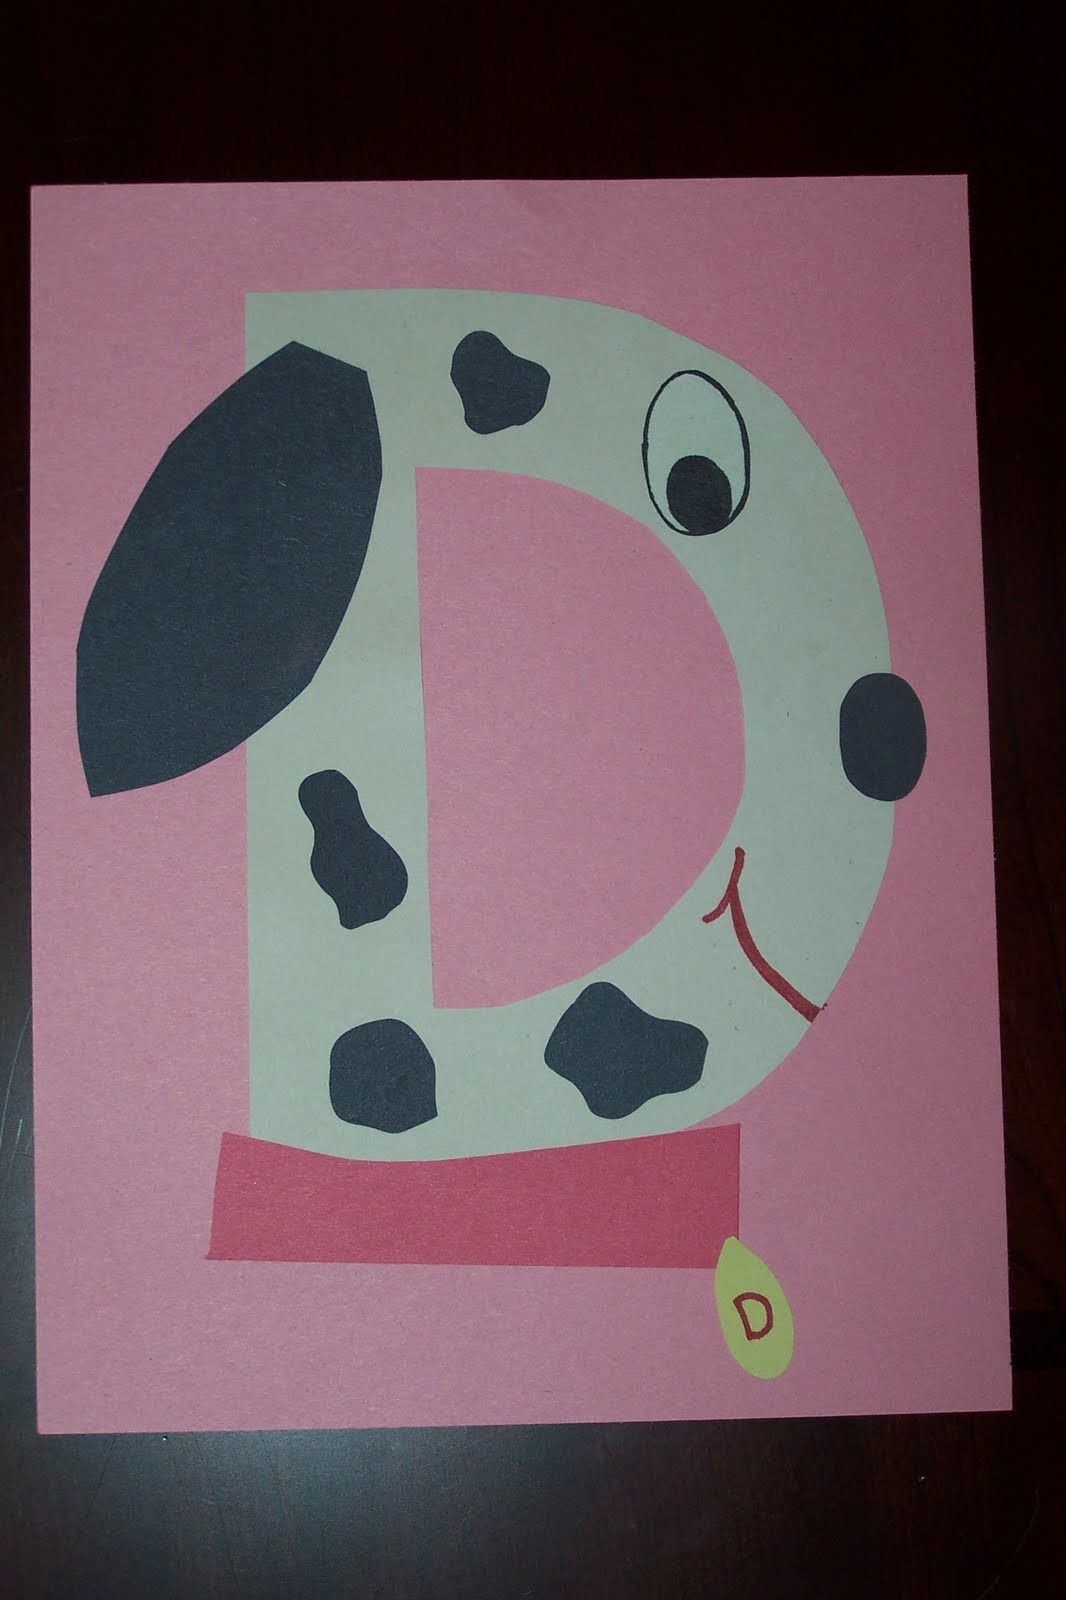 Best ideas about D Crafts For Preschoolers . Save or Pin The Princess and the Tot Letter Crafts Uppercase Now.